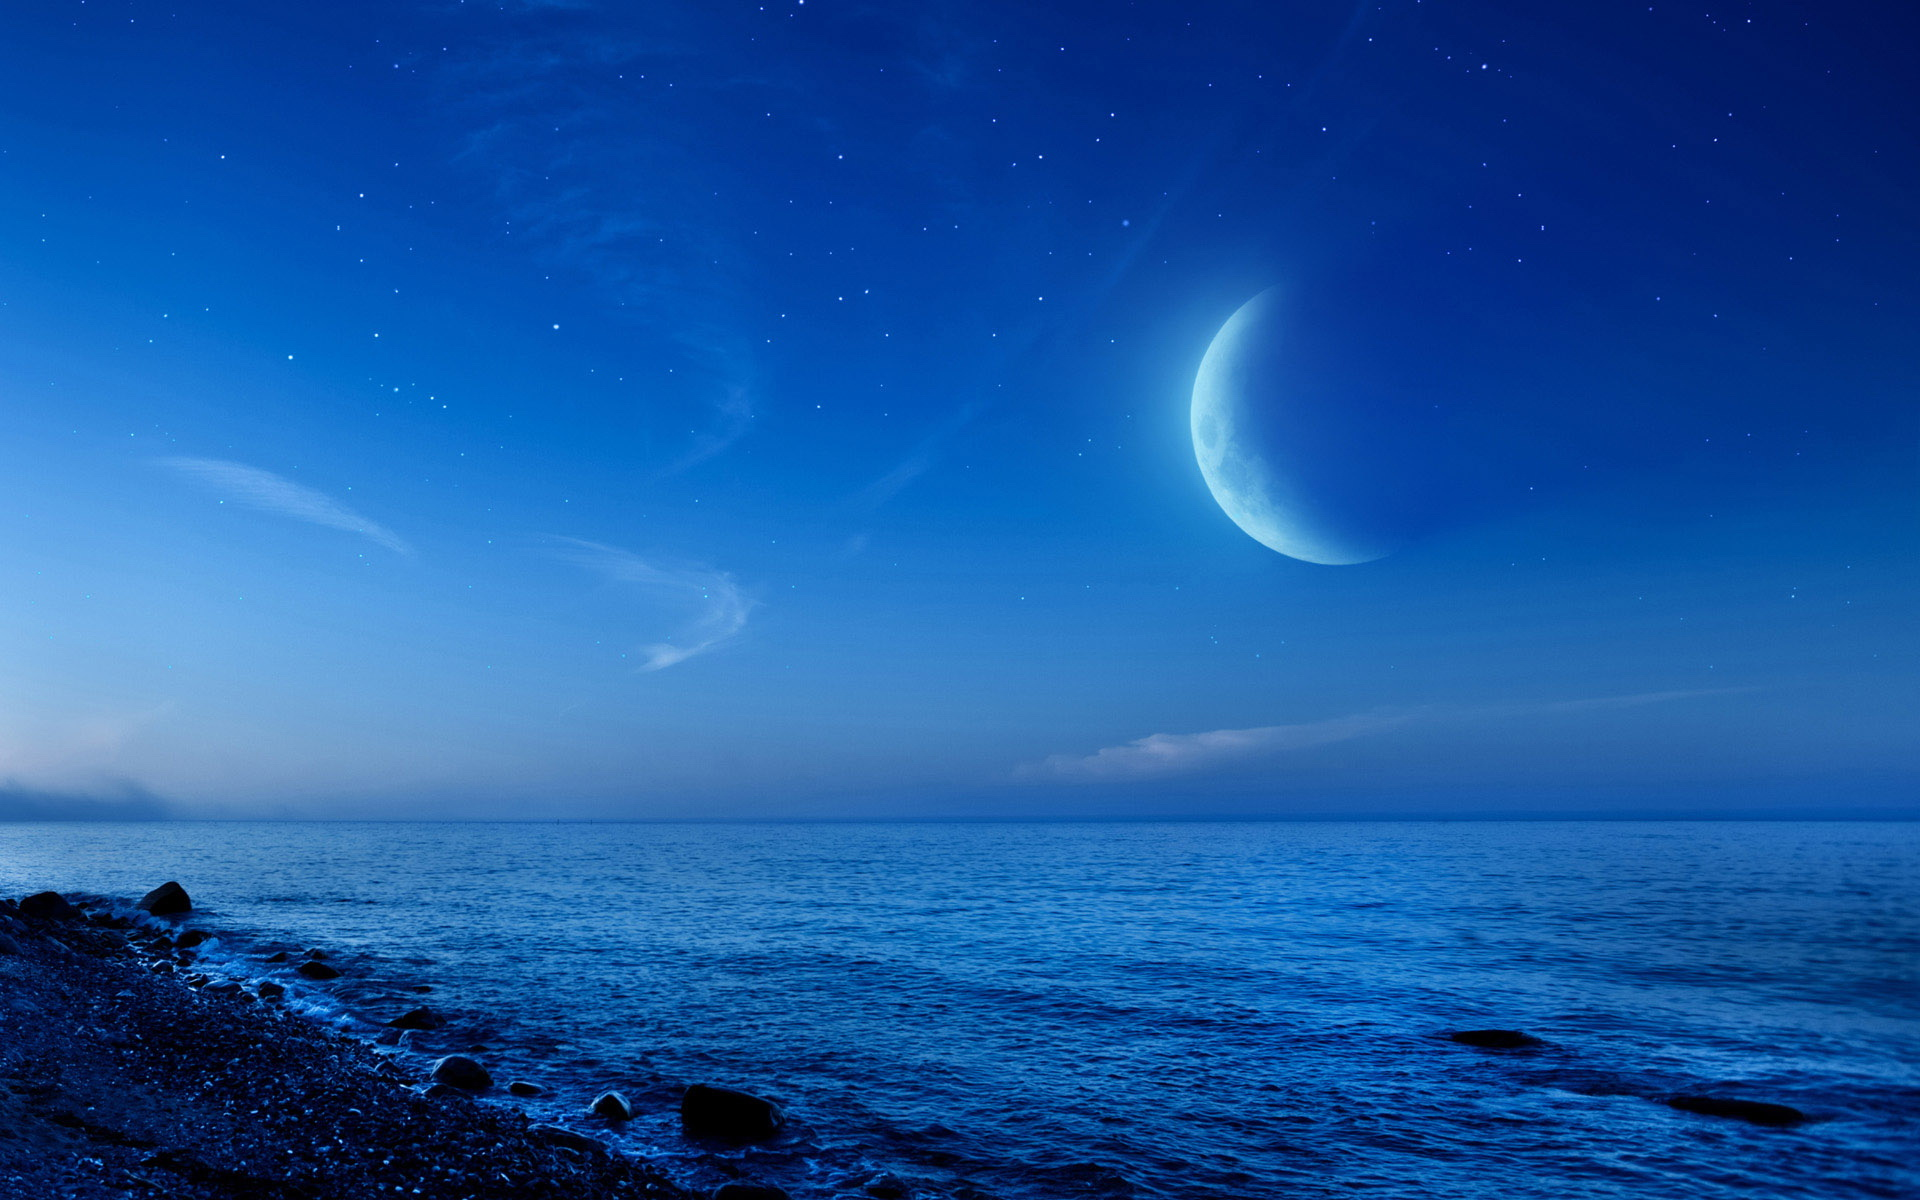 moonlight-and-sea_192420-1920x1200